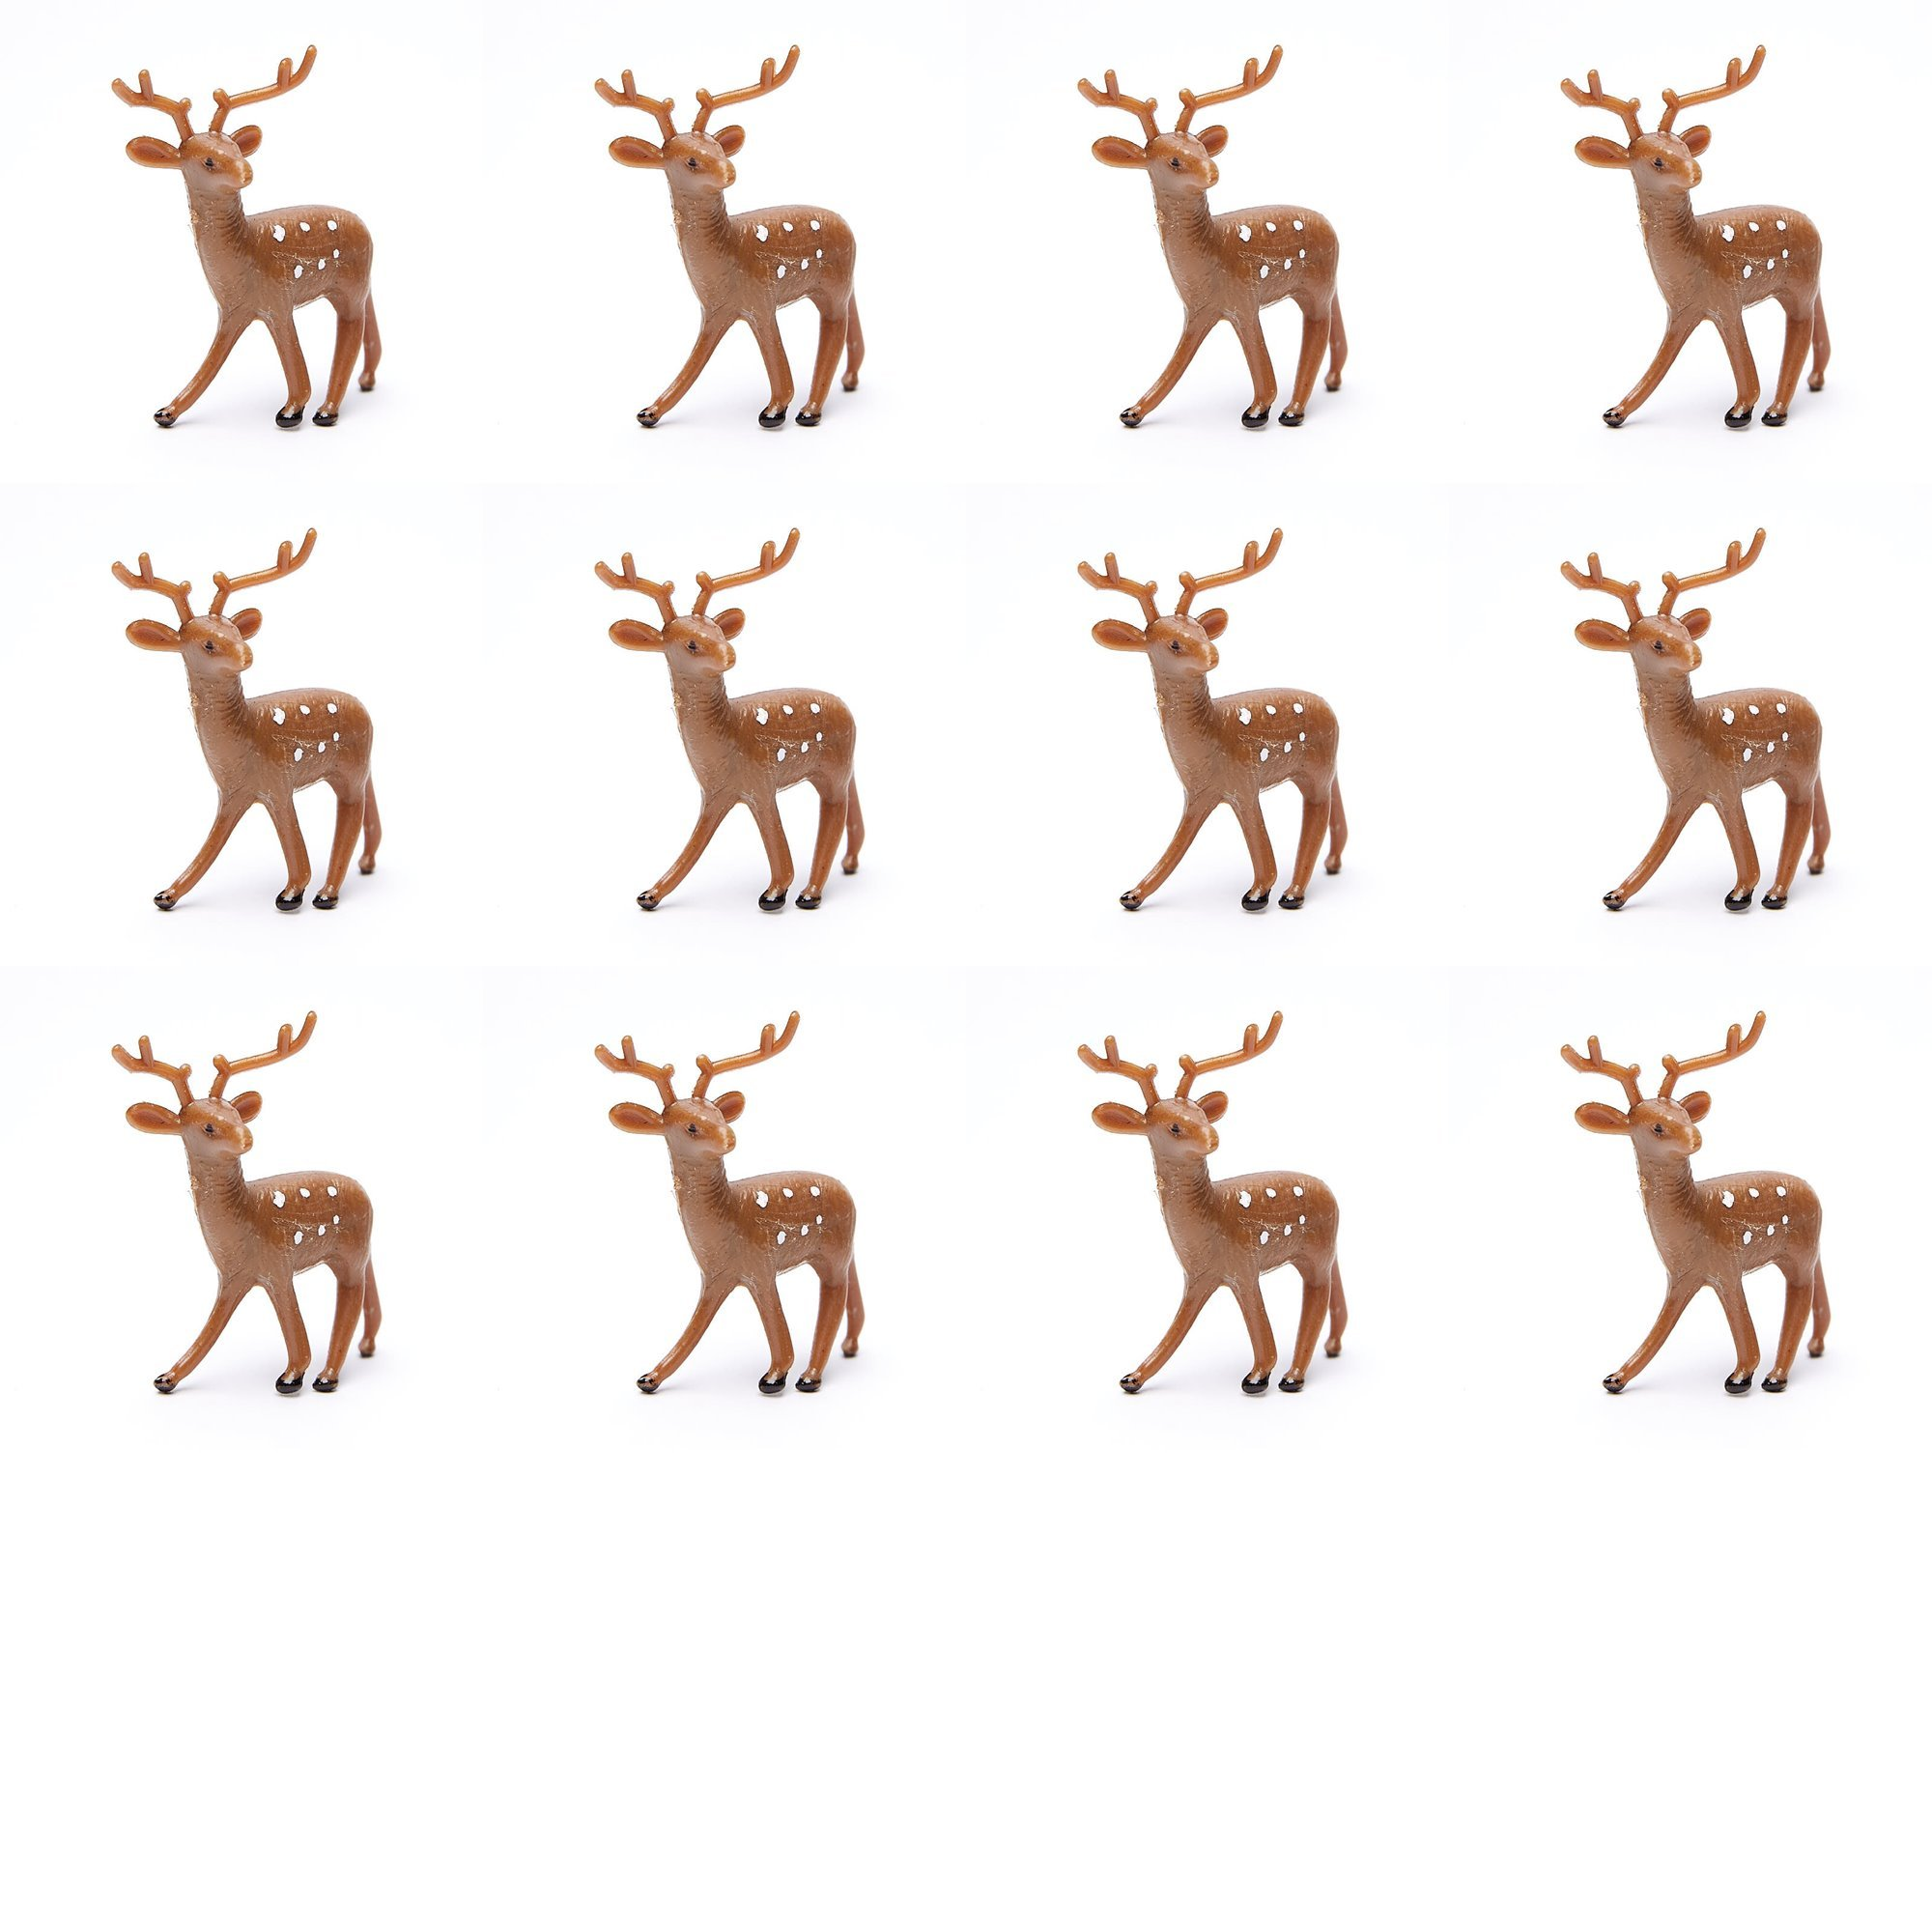 Factory Direct Craft Group of 12 Plastic Standing Brown Deer for Christmas Villages and Everyday Crafting (2 1/2 Inch)